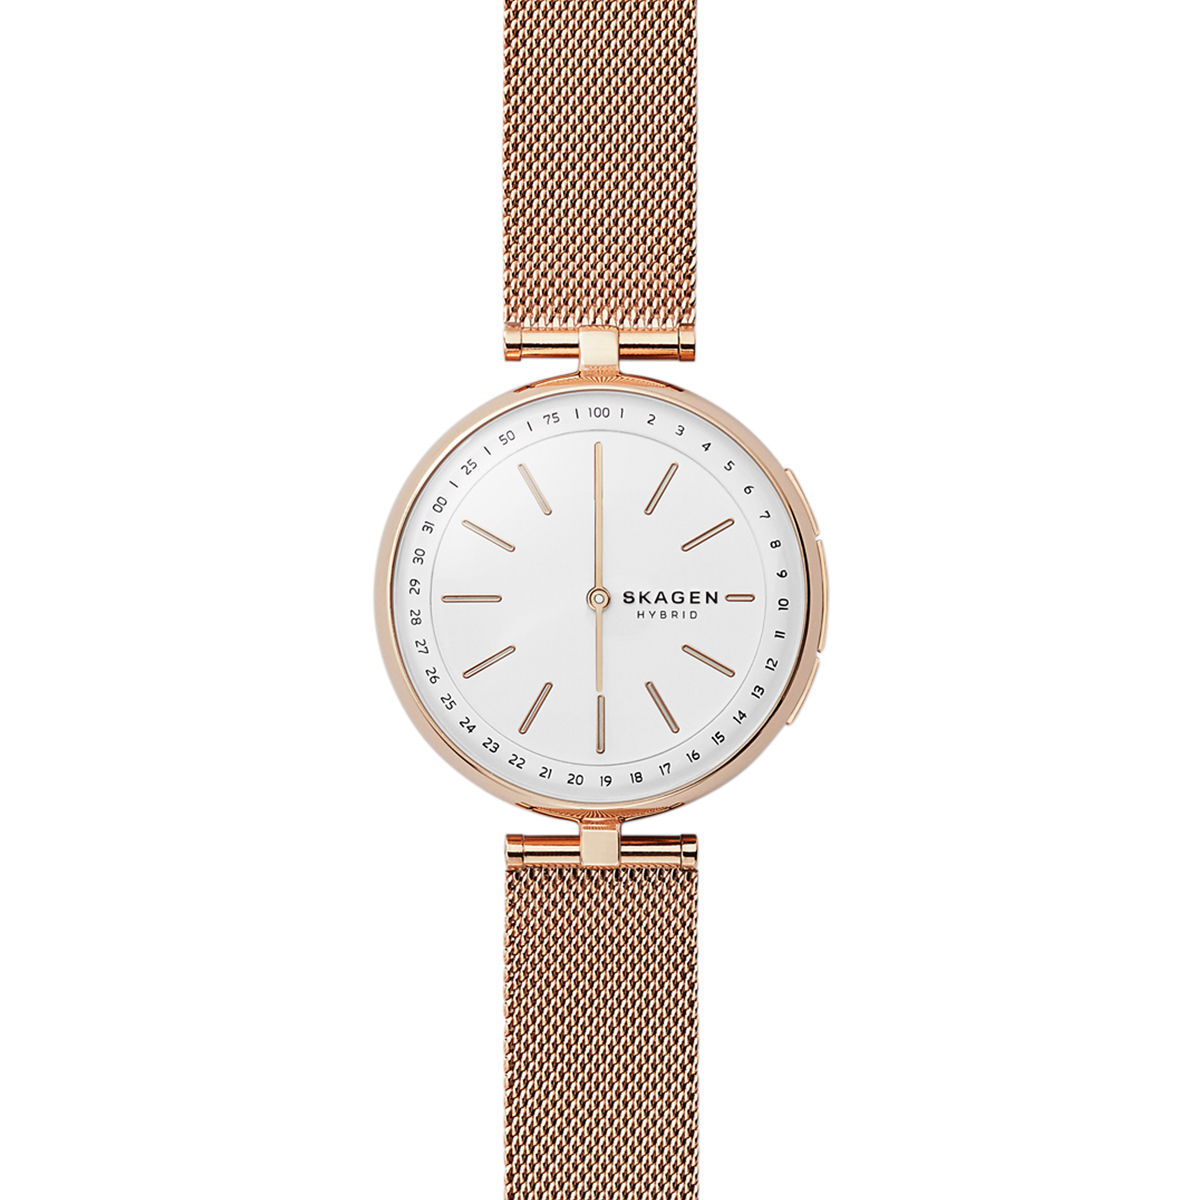 Smartwatch Damen Skagen Connected Damen Hybrid Smartwatch Quotskt1404